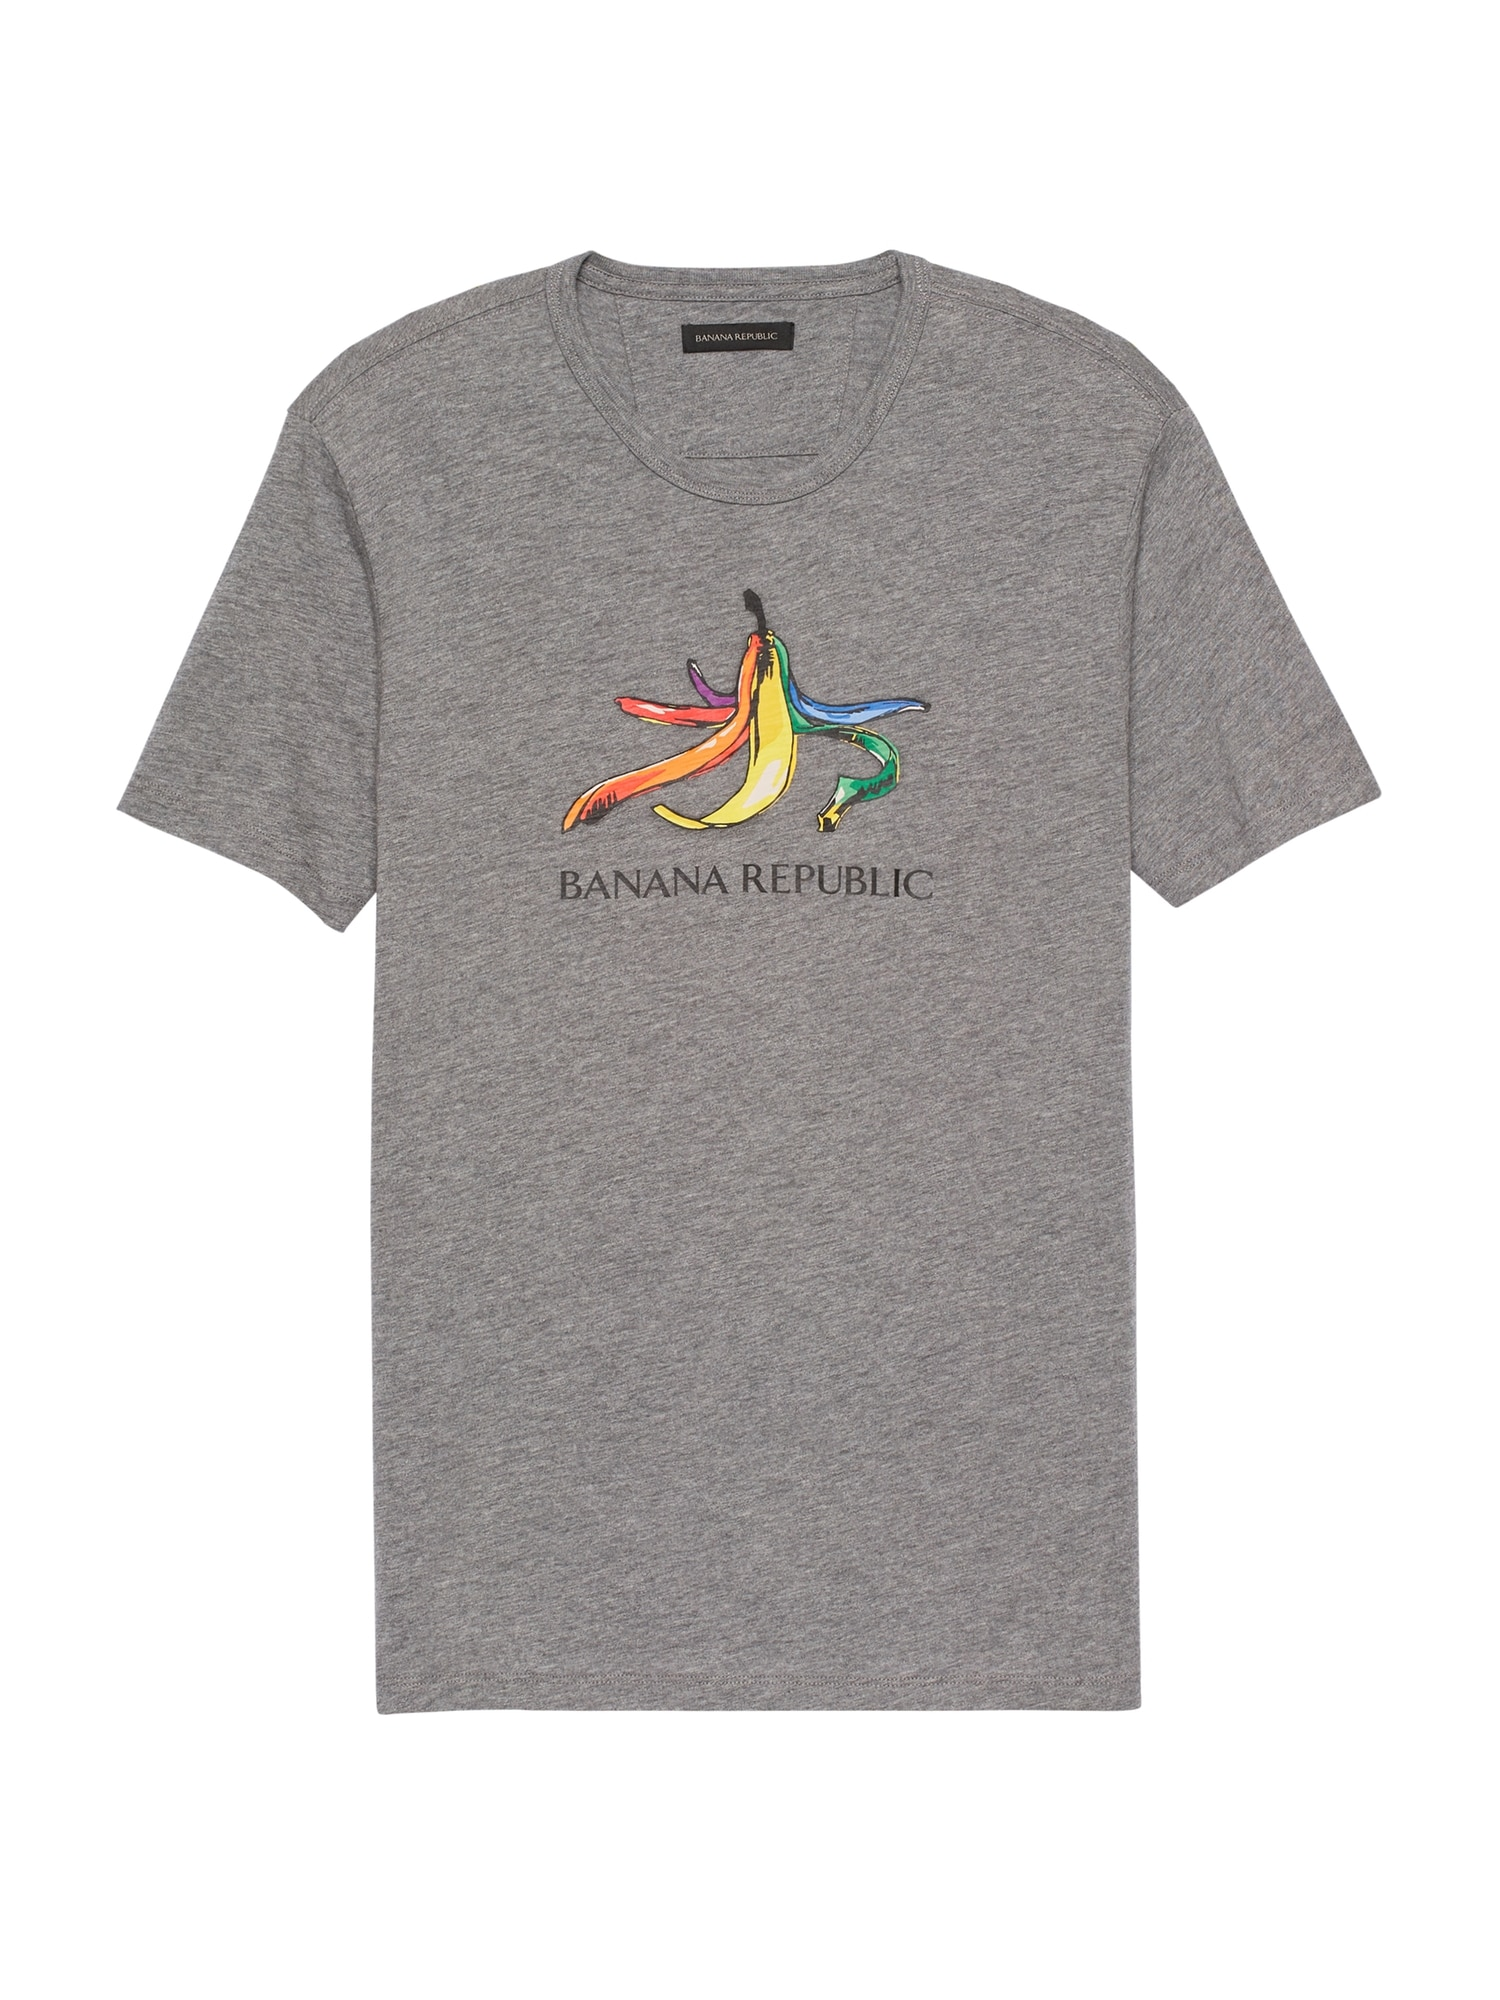 79846a36 Pride 2019 Rainbow Banana T-Shirt (Men's Sizes) | Banana Republic